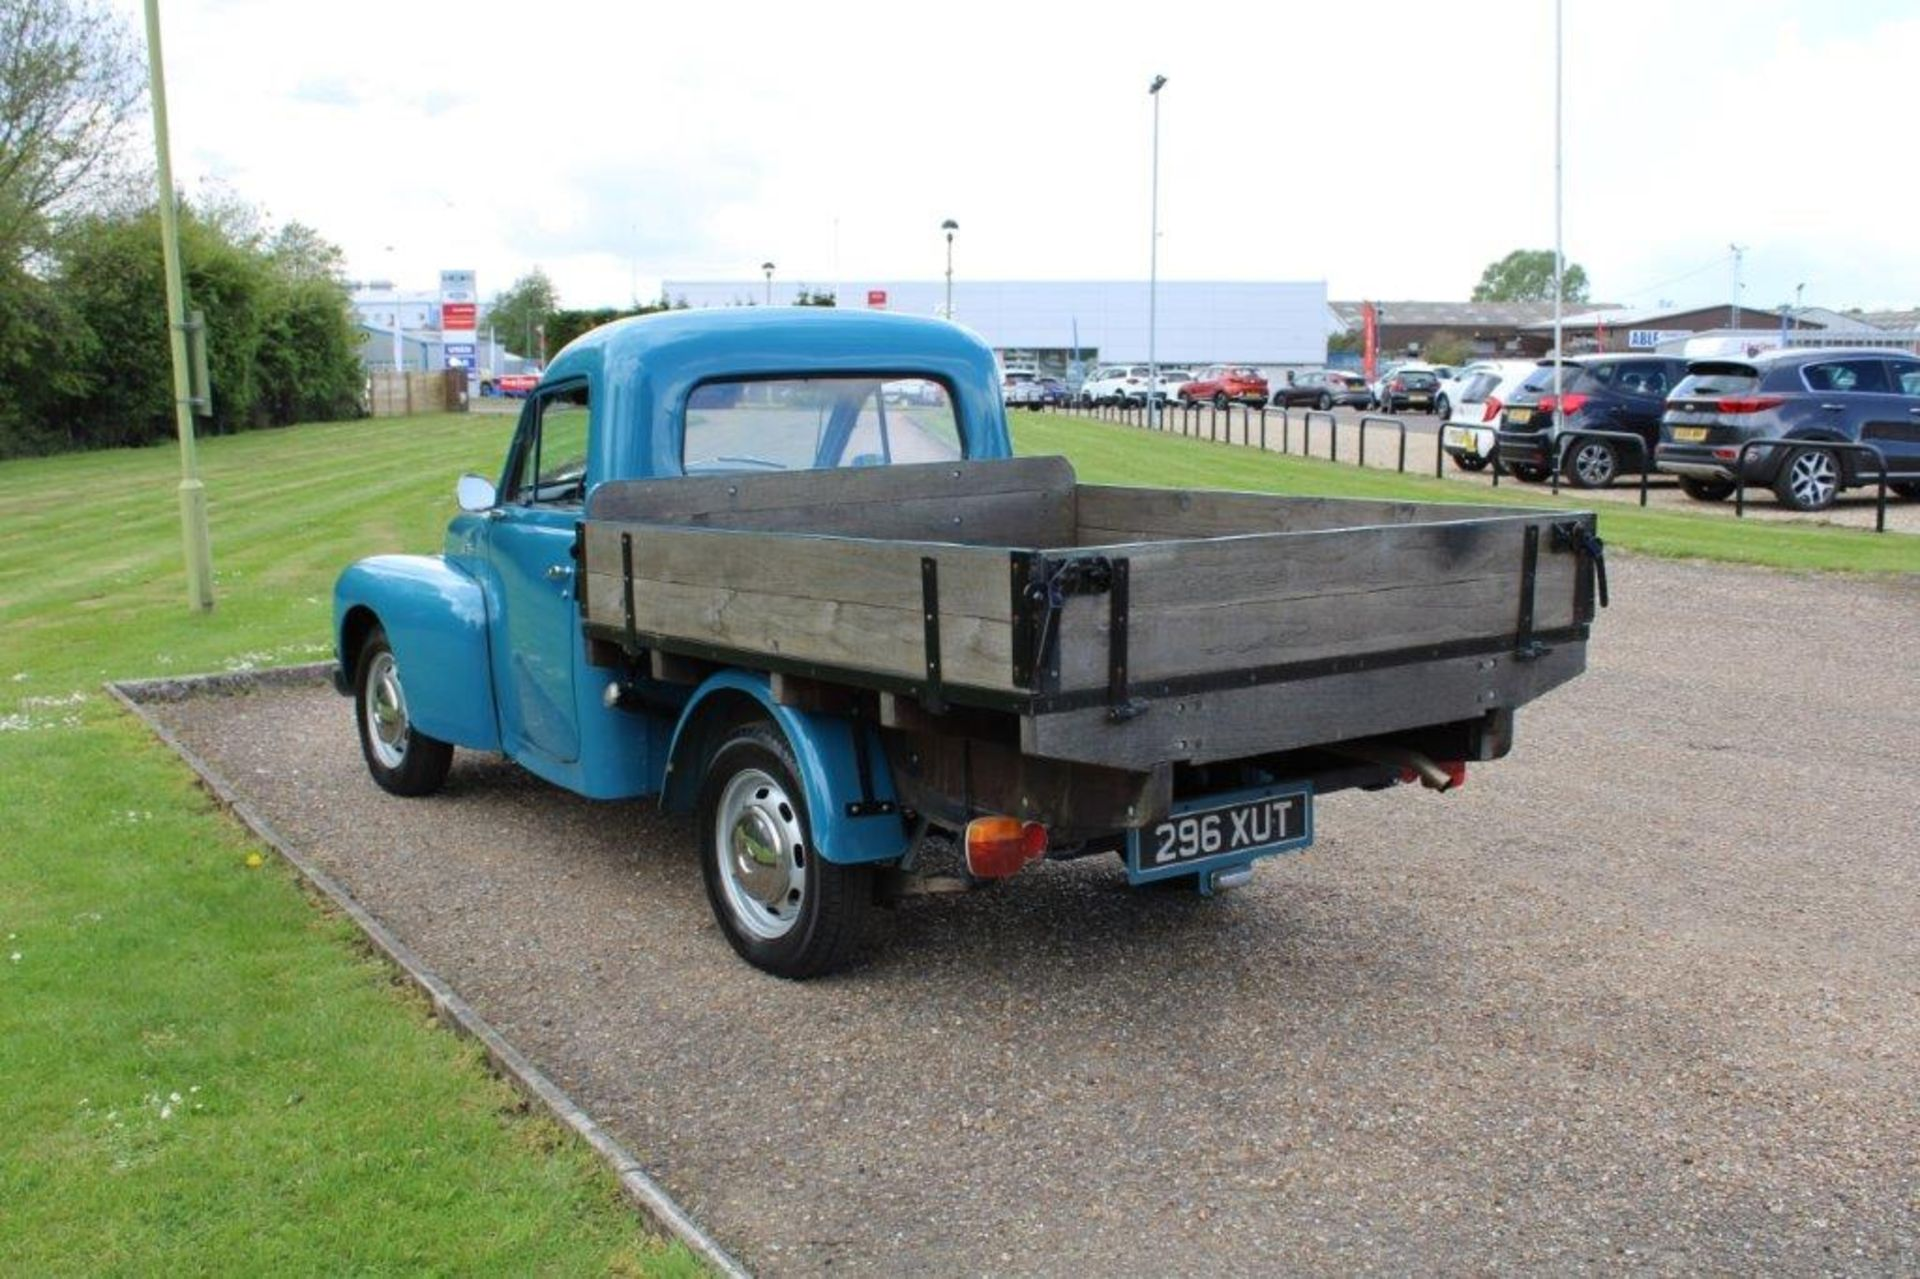 1961 Volvo P 21114 A Pick-Up LHD - Image 8 of 25